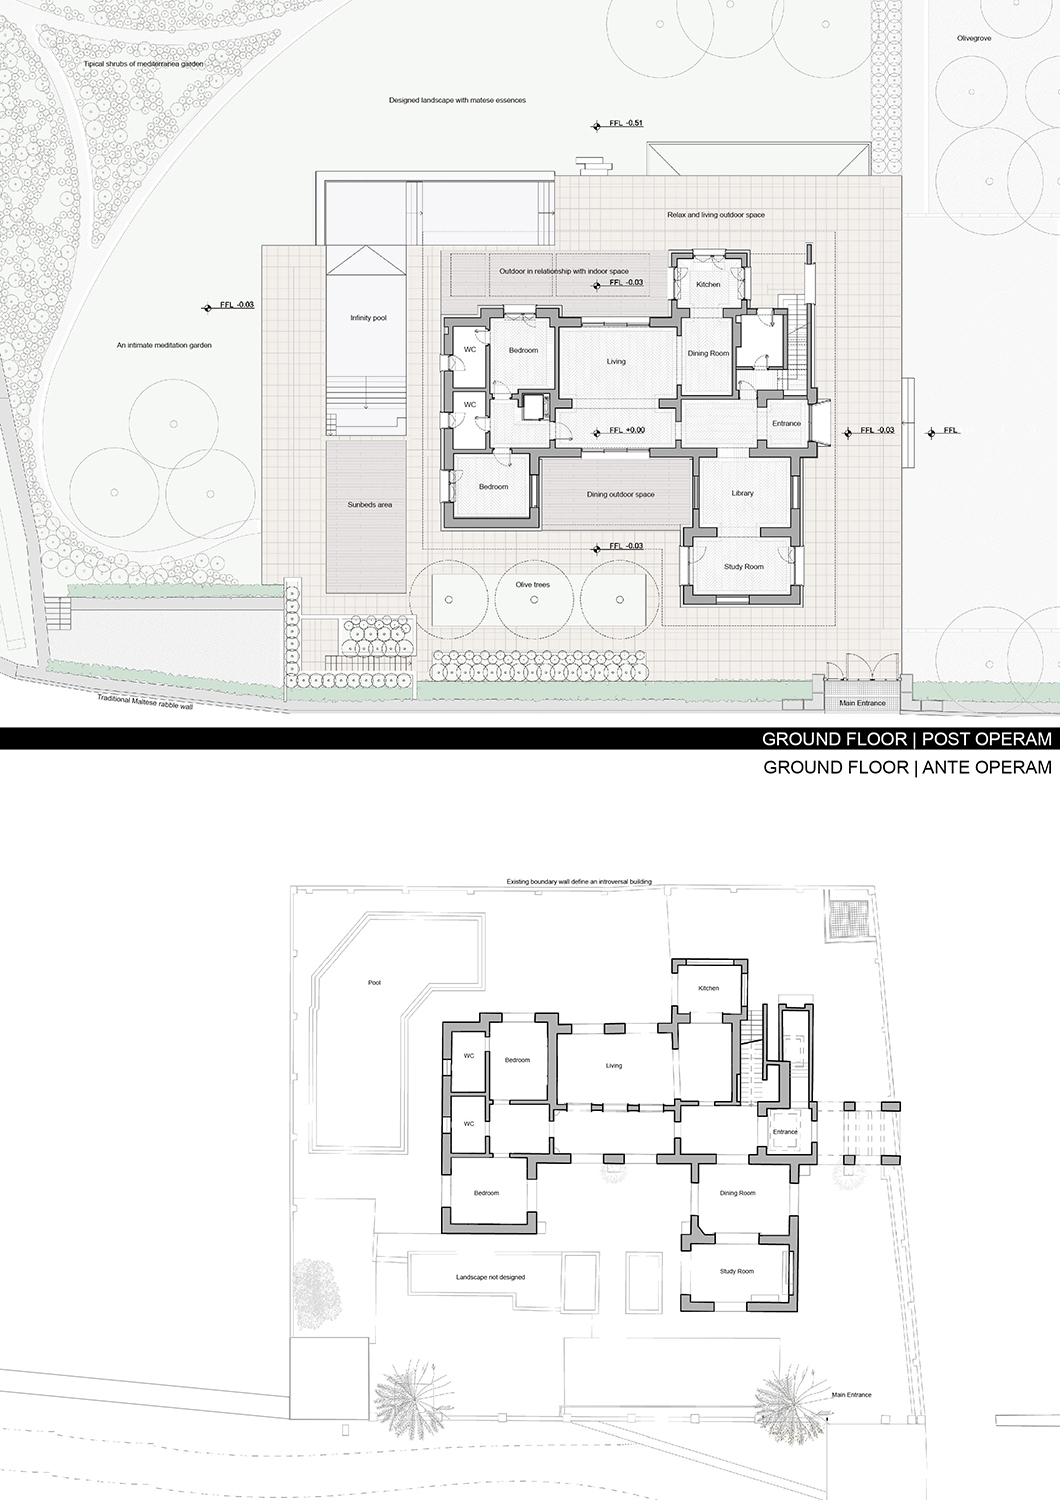 Floor Plans: Before and After PERALTA - design & consulting}